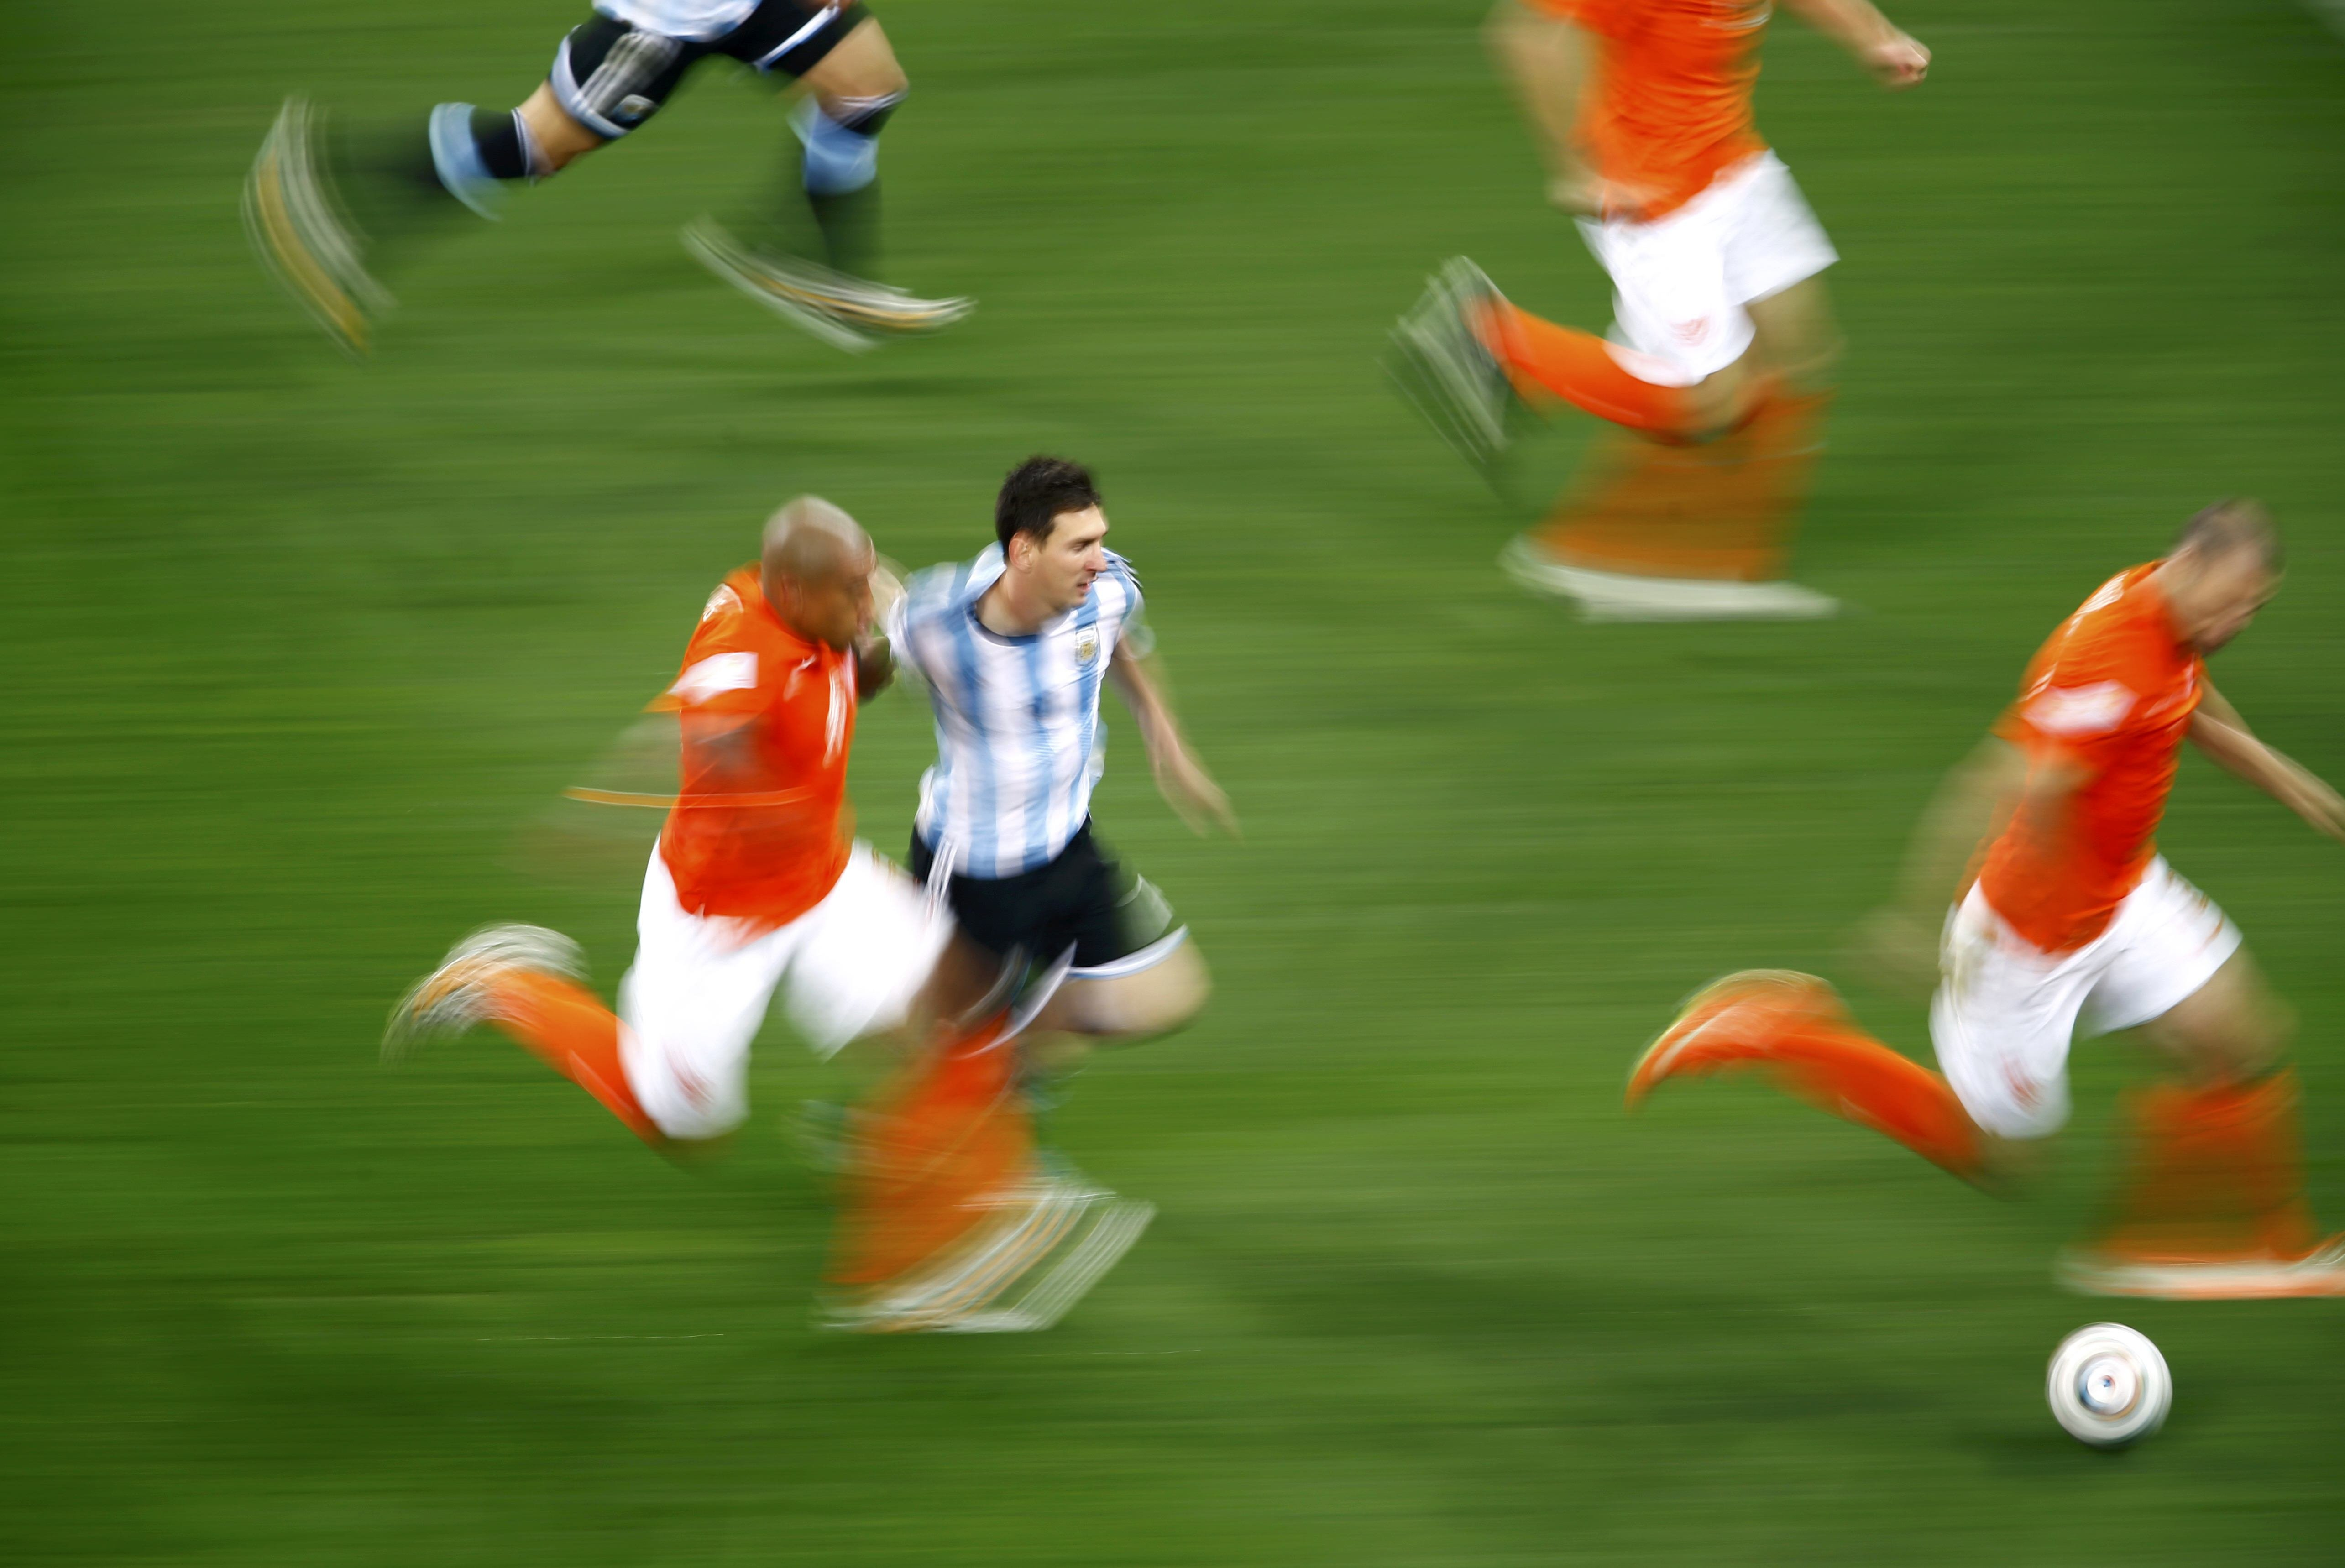 Argentina's Lionel Messi fights for the ball with Nigel de Jong of the Netherlands during their 2014 World Cup semi-finals at the Corinthians arena in Sao Paulo, Brazil on July 9, 2014.